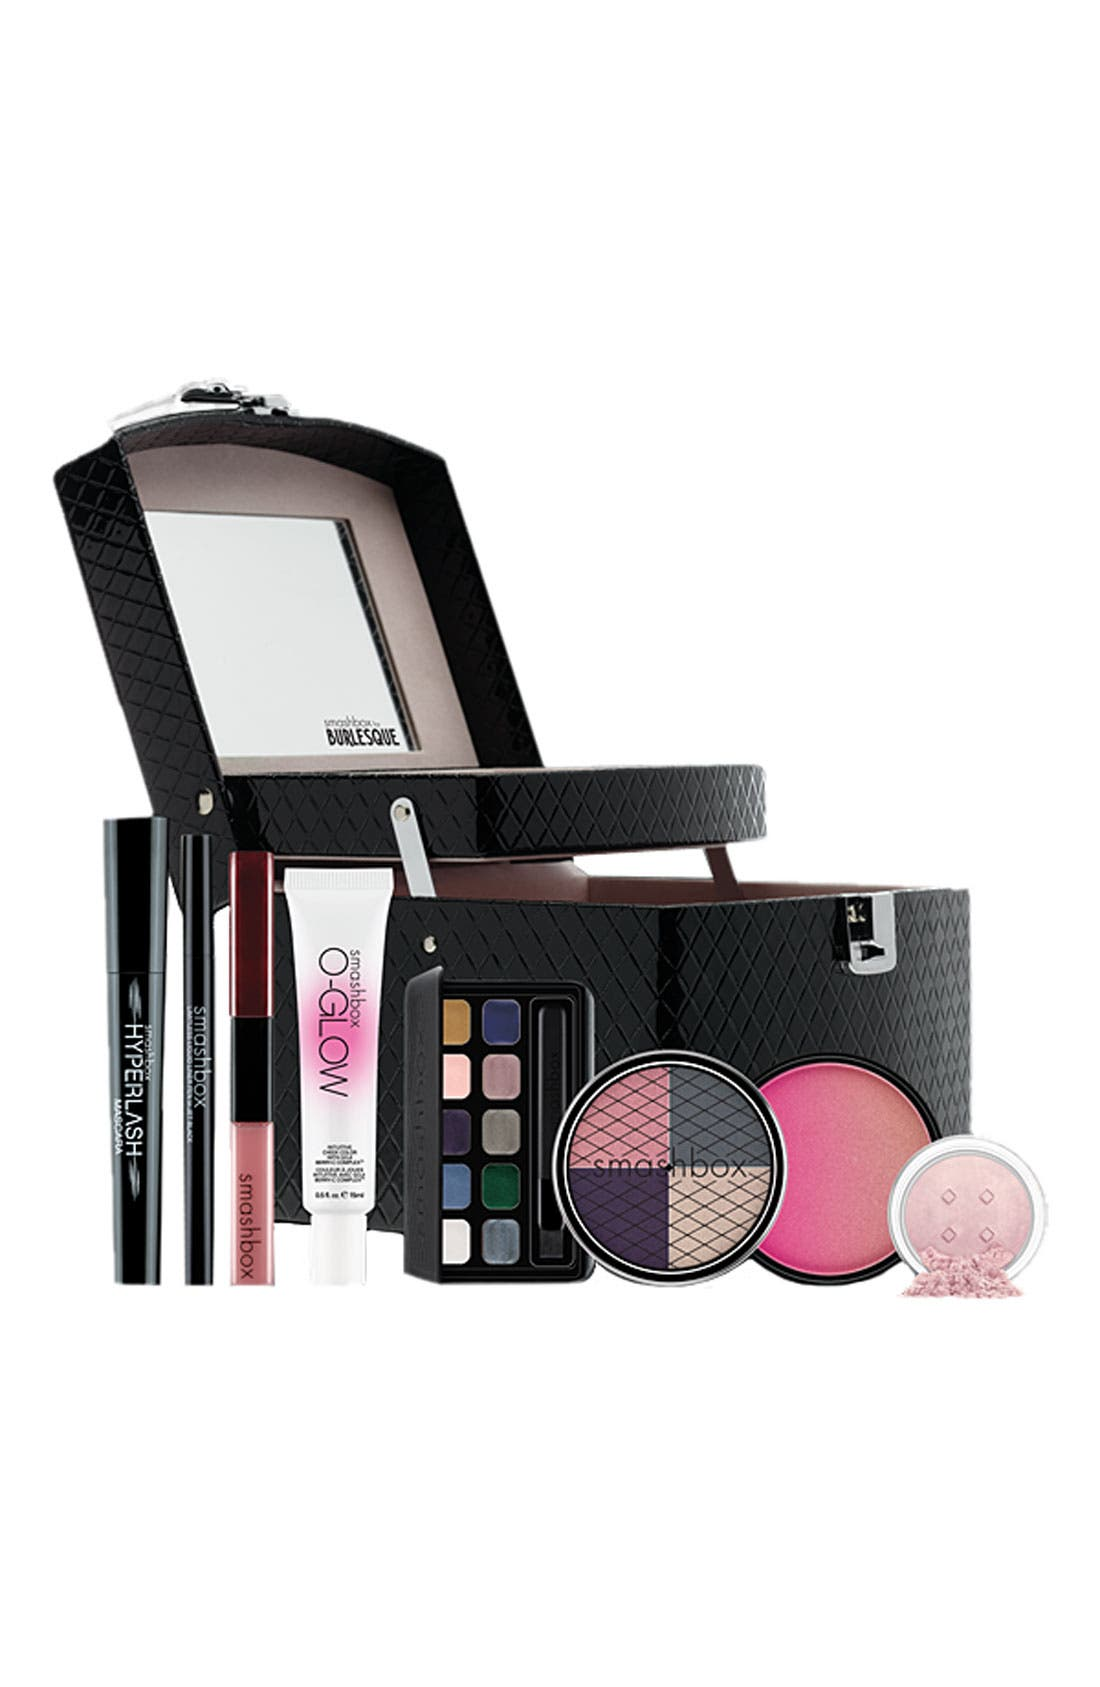 Main Image - Smashbox 'Burlesque' Beauty Collection & Train Case (Nordstrom Exclusive) ($250 Value)